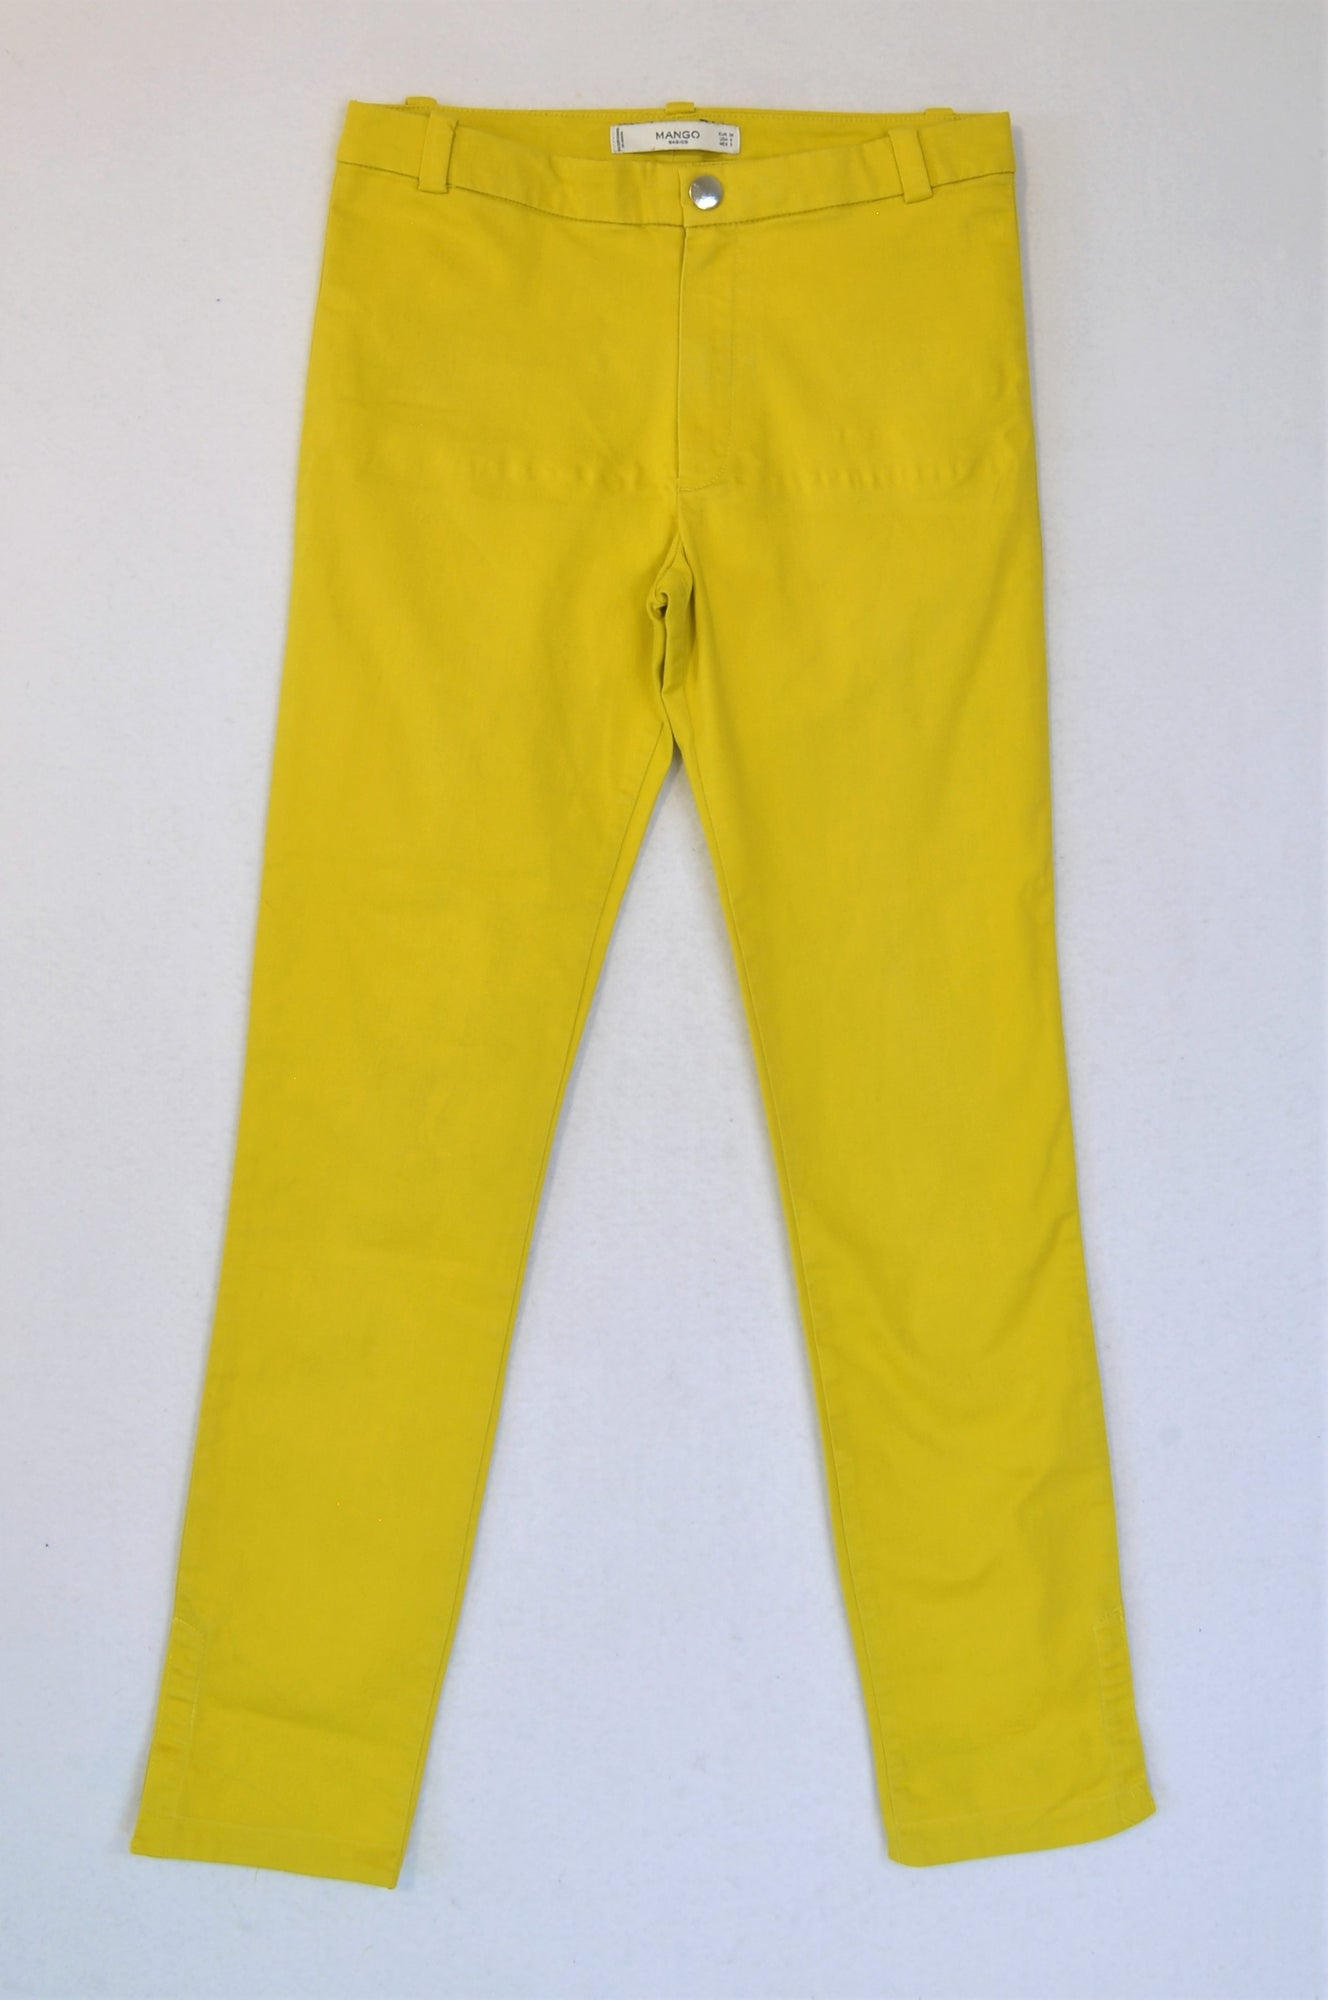 Mango Mustard Yellow Pants Women Size 8